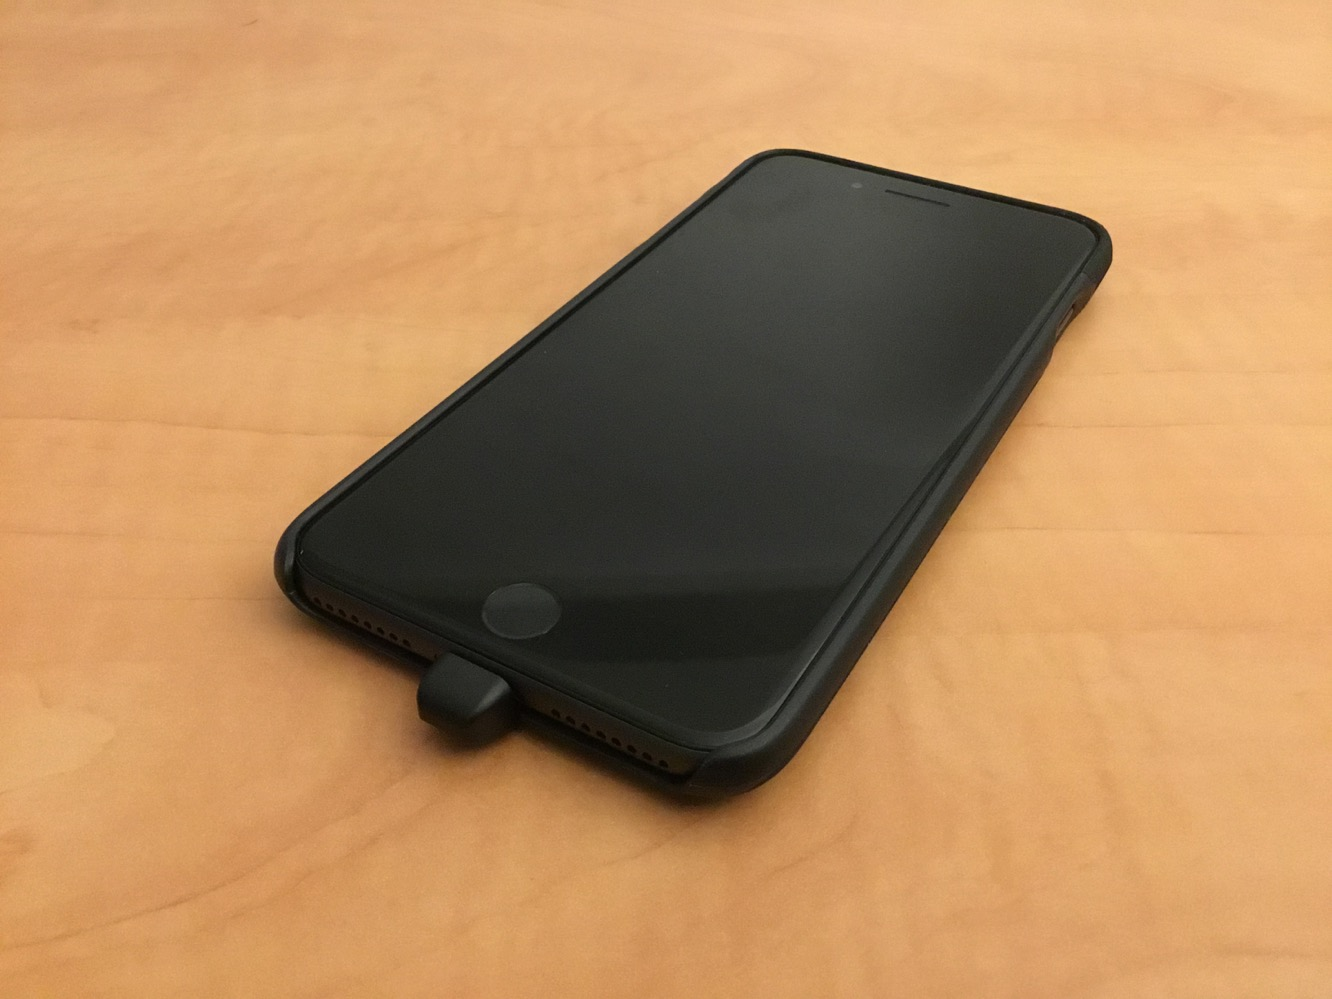 New image of iPhone X attracts attention to a certain issue — Spotted